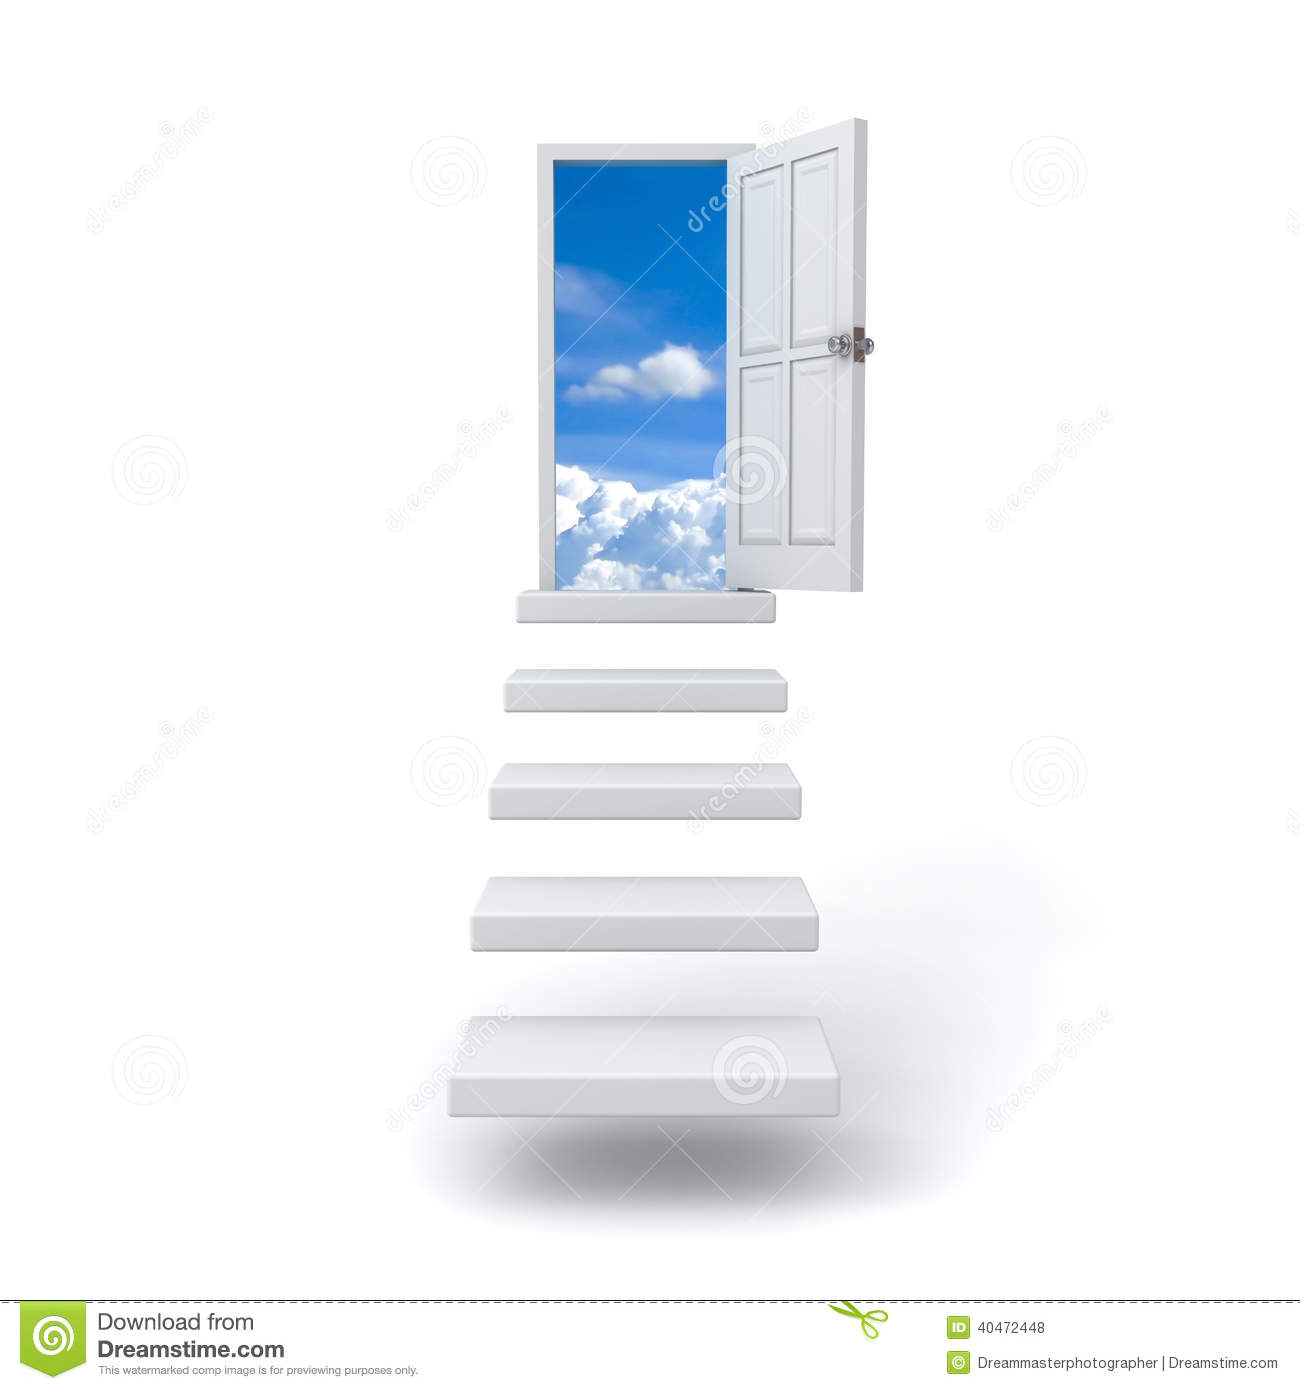 step up the ladder to the sky over white stock illustration step up the ladder to the sky over white